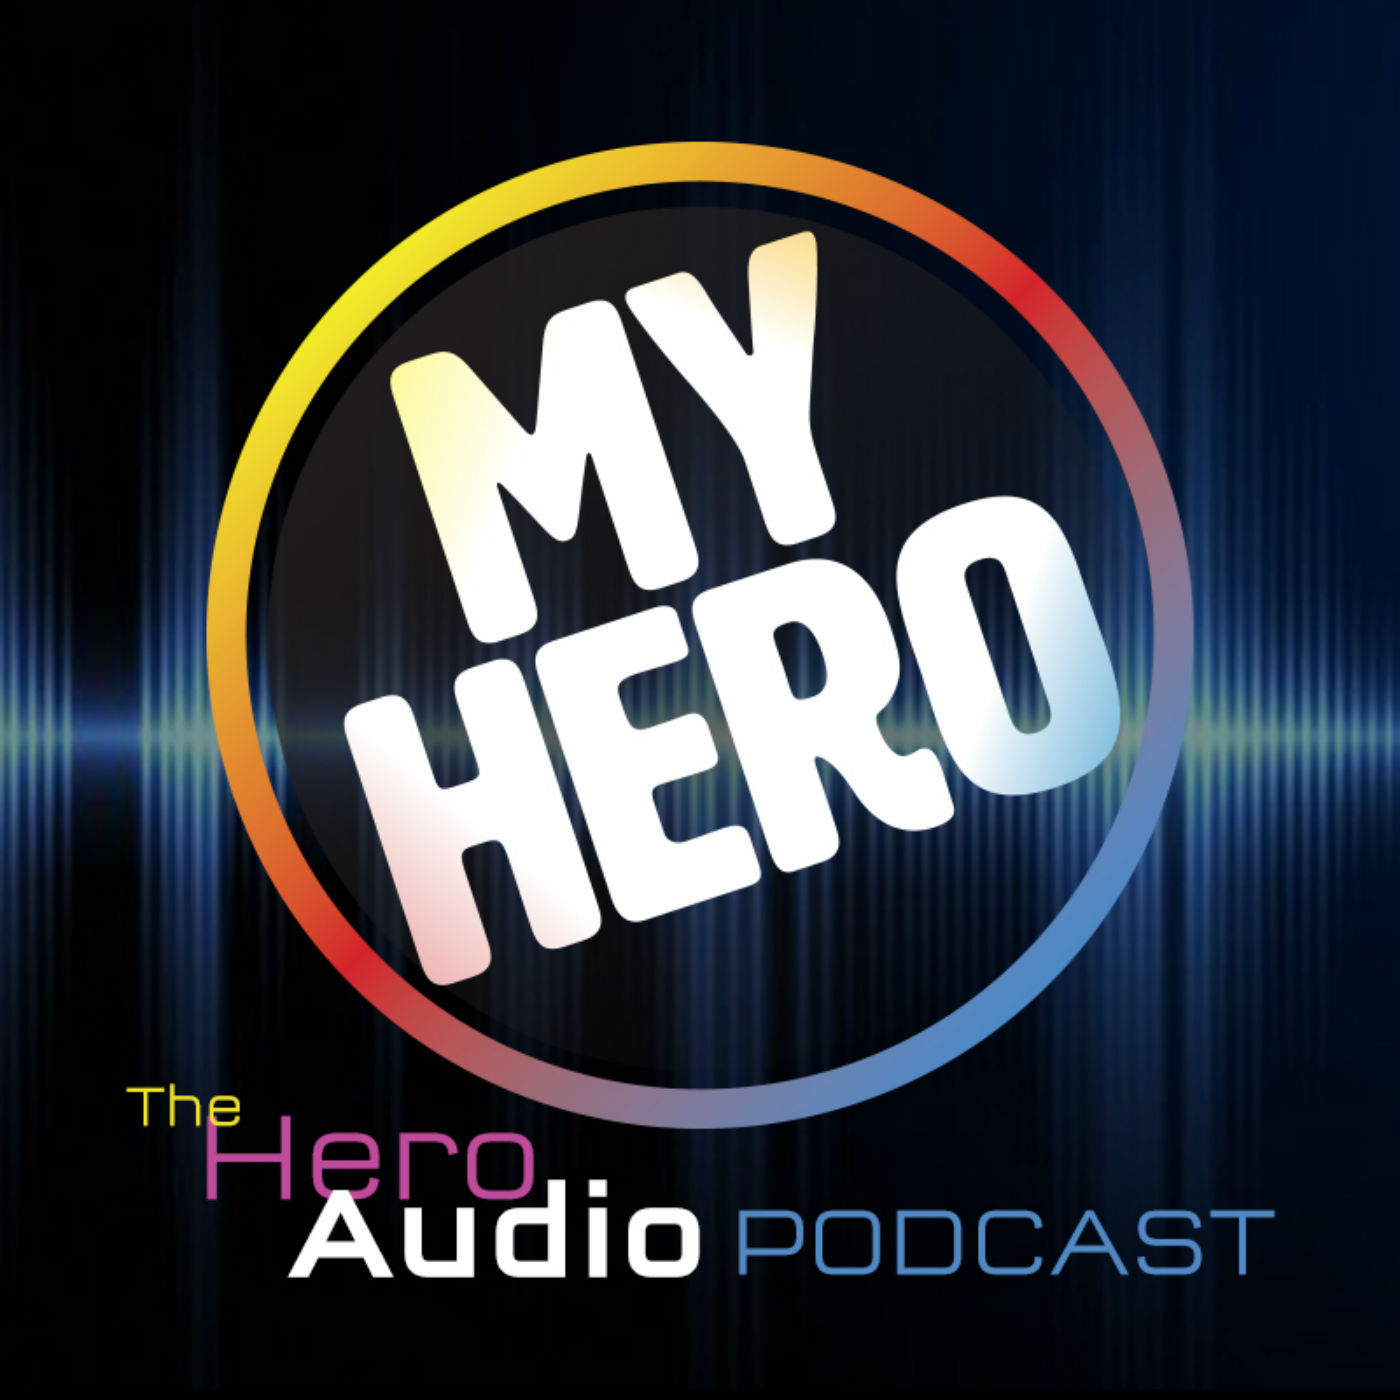 The myheroproject's Podcast